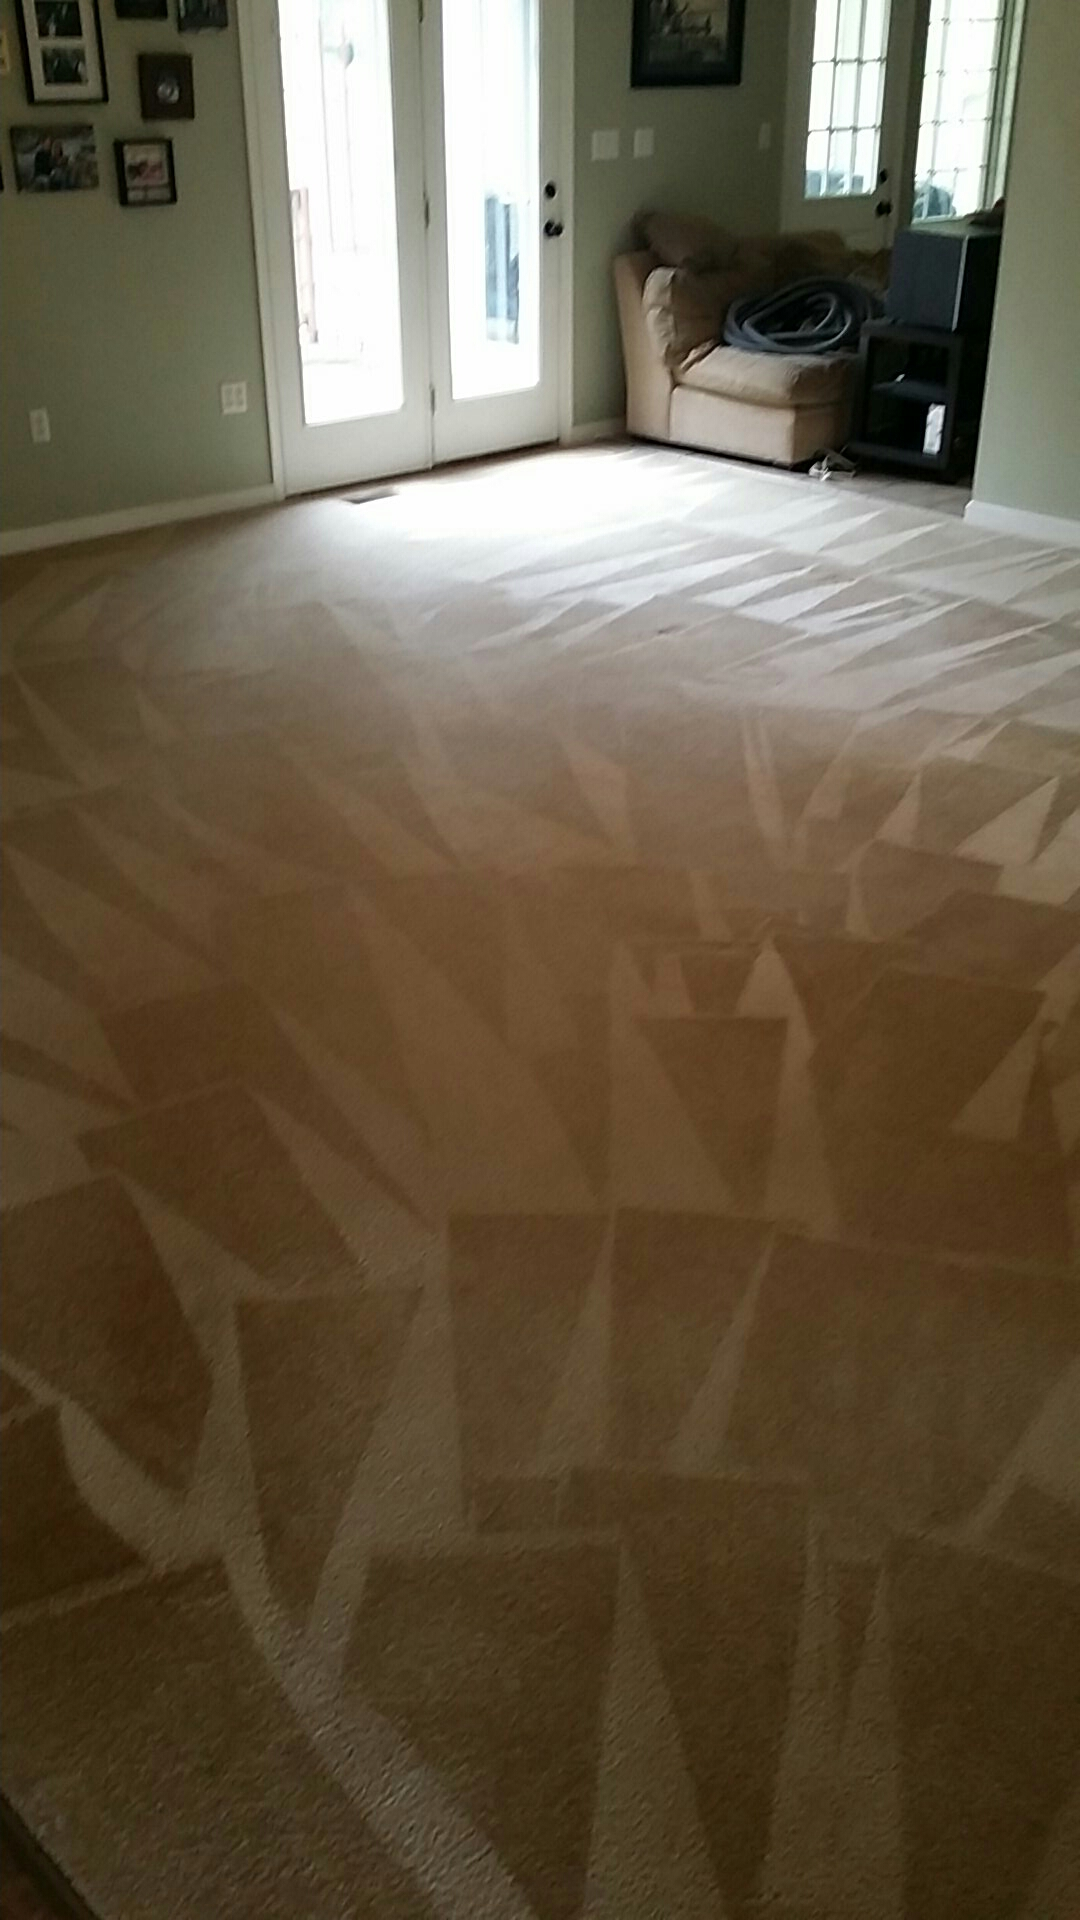 Powhatan, VA - Carpet turned out brand new for 10+years old! Customer Happy!